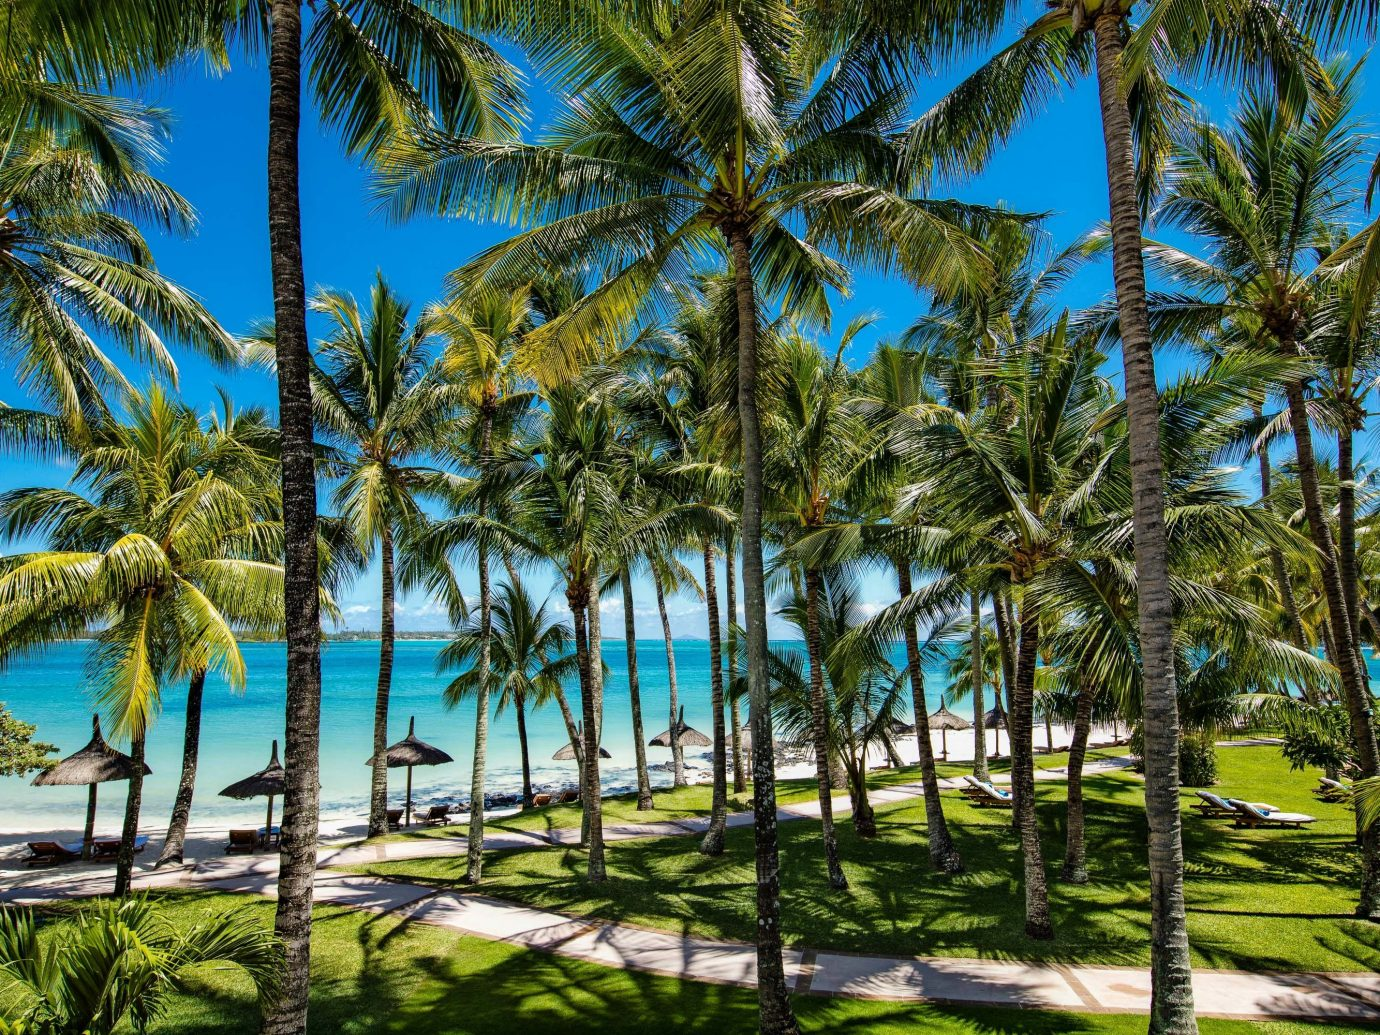 Trip Ideas tree outdoor palm grass plant tropics vegetation Resort palm tree arecales water sky caribbean vacation coconut computer wallpaper leisure lined area shade